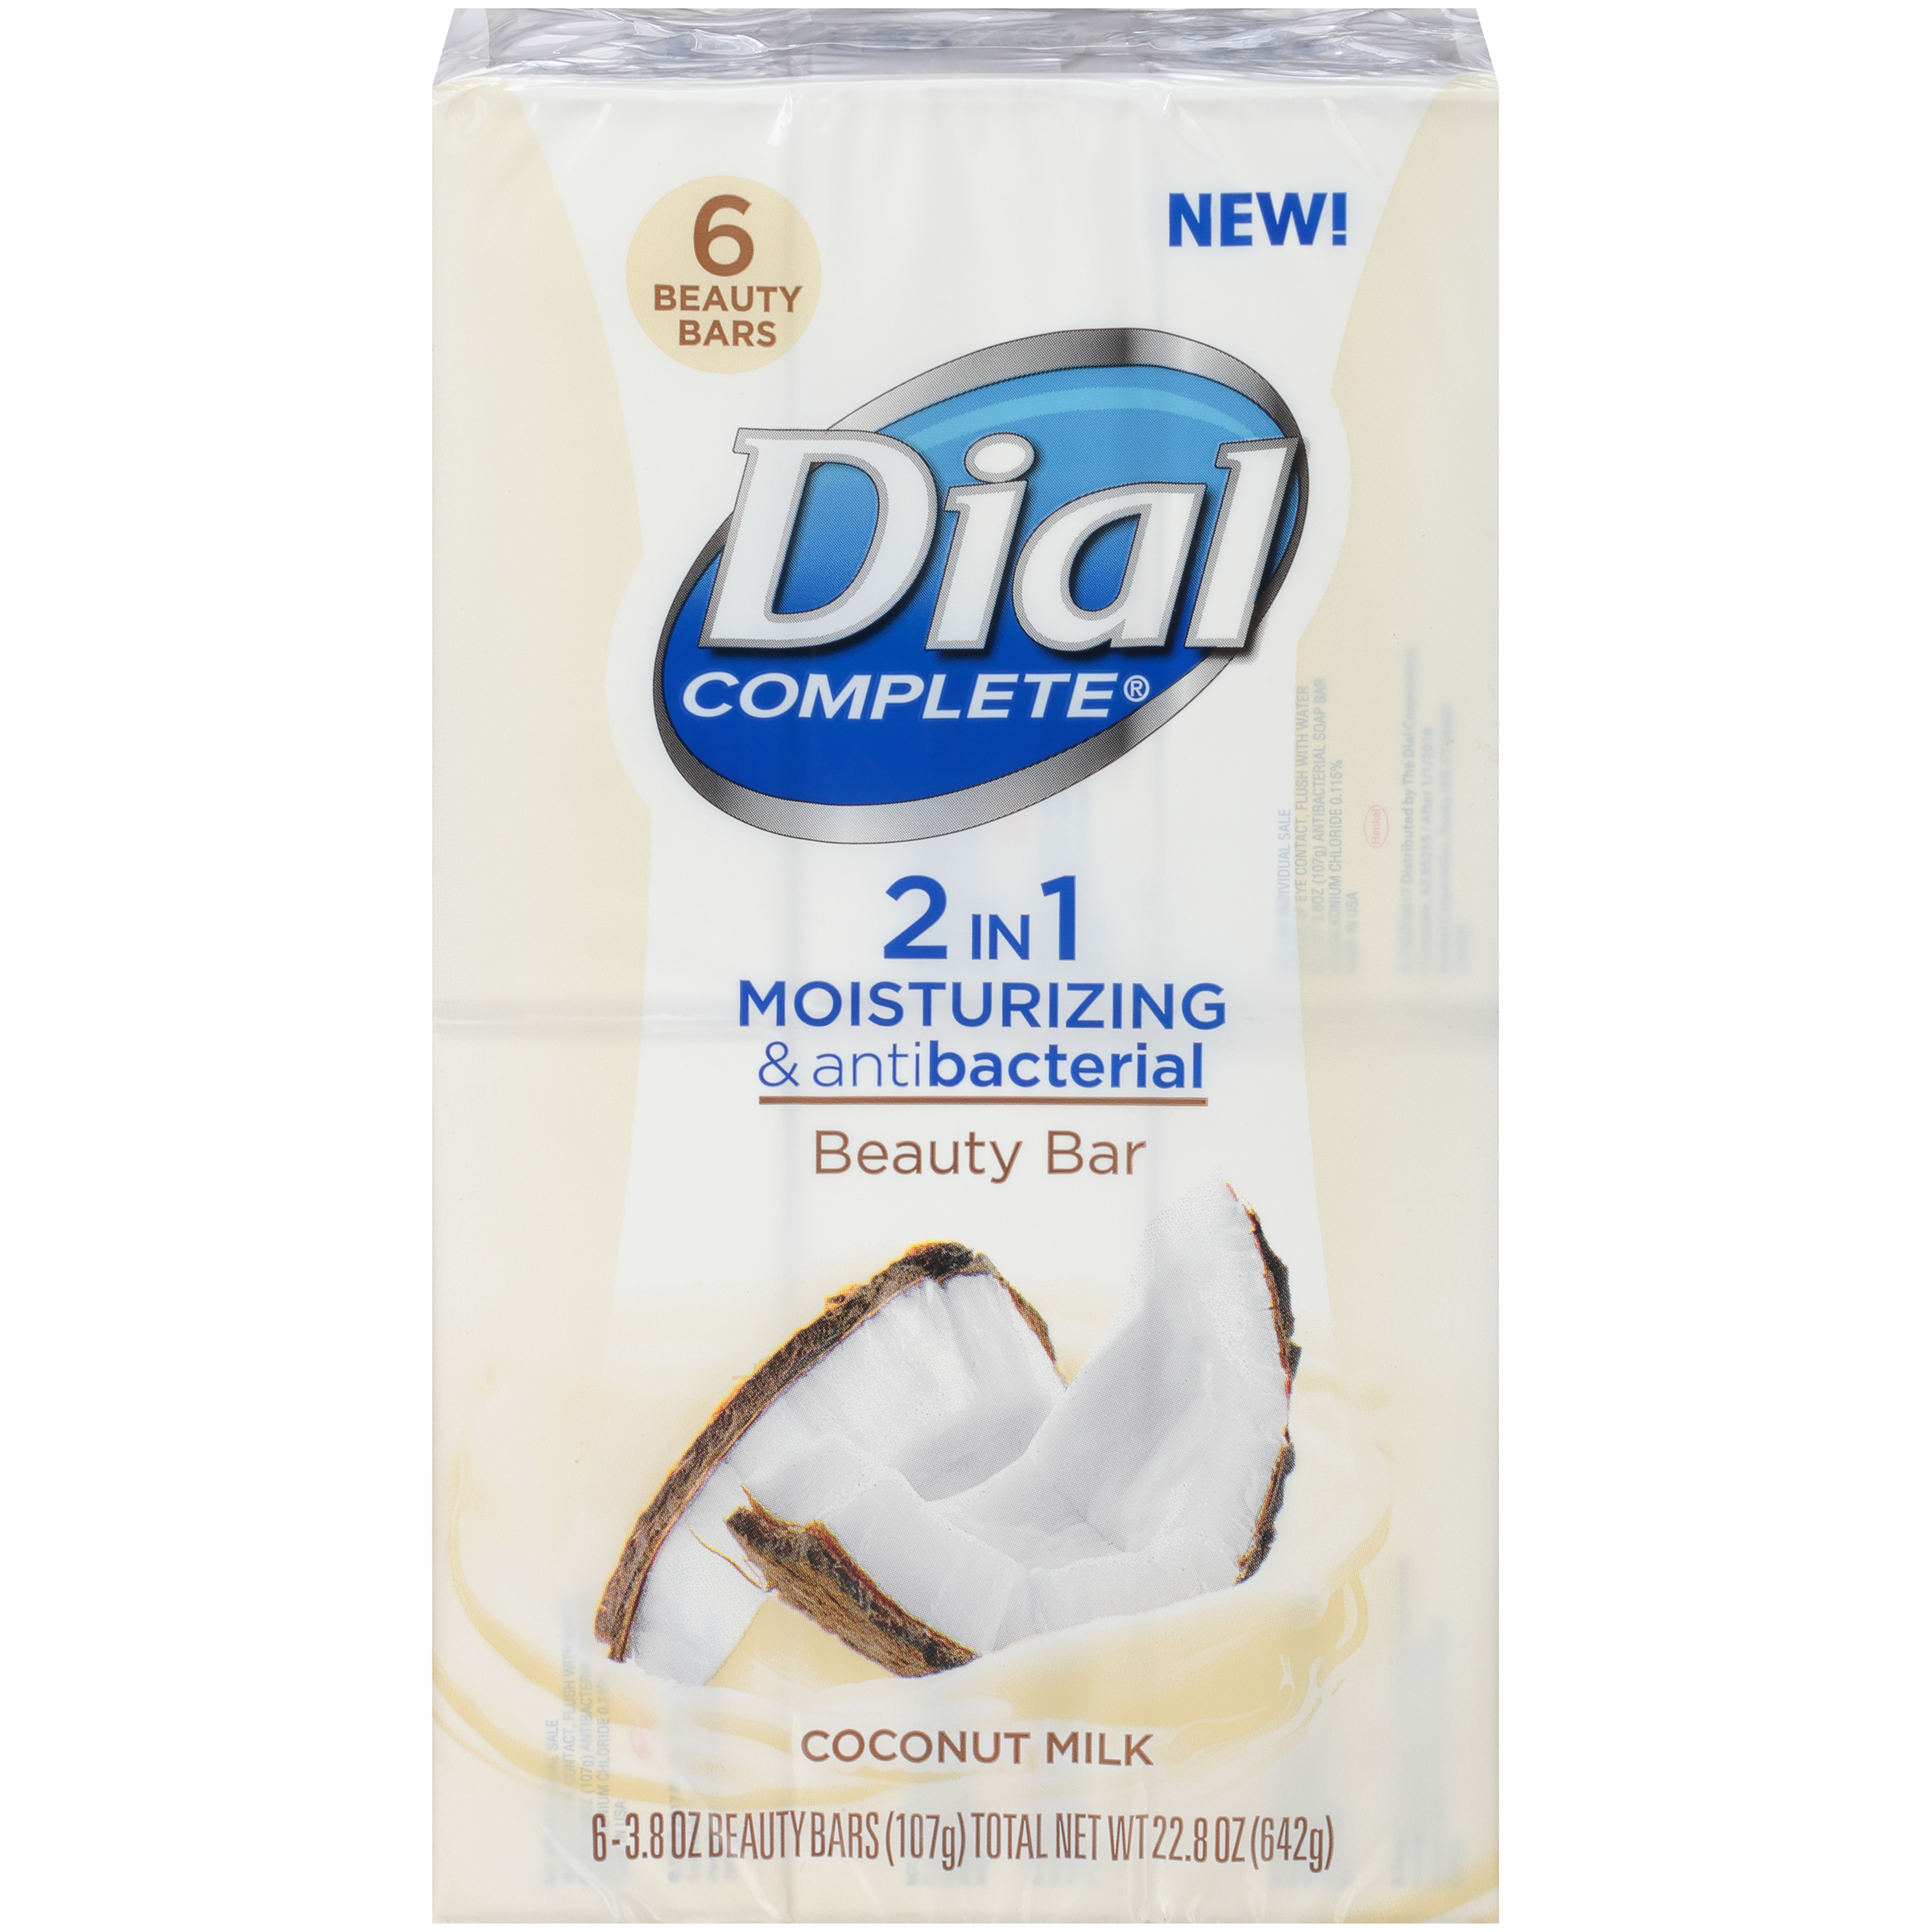 Dial Complete 2 in 1 Moisturizing & Antibacterial Beauty Bar, Coconut Milk, 3.8 Ounce, 6 Bars